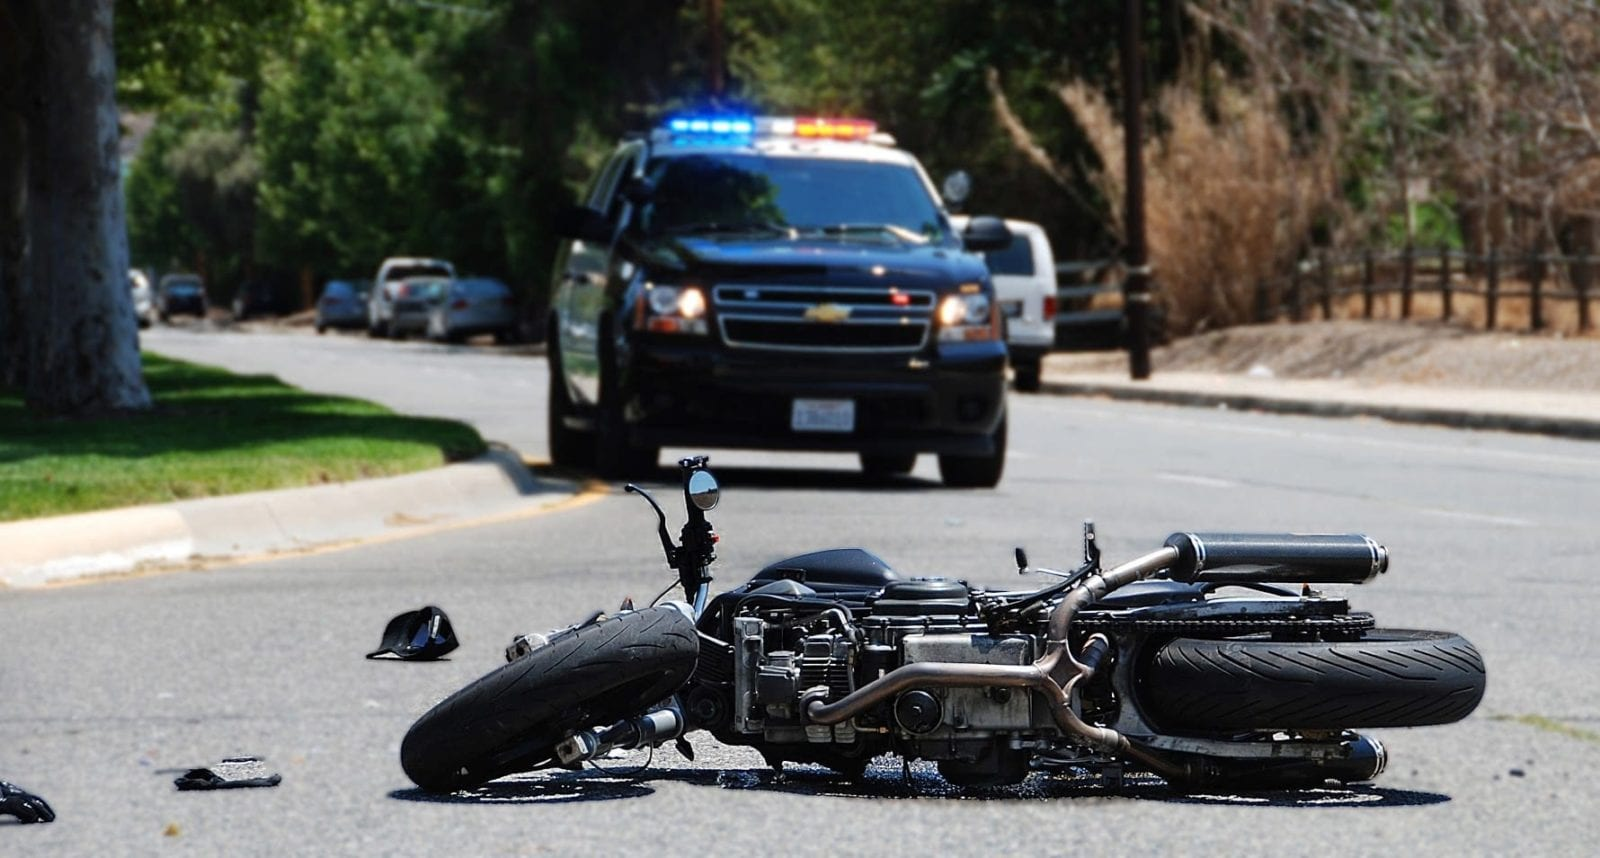 Stock Photo Of A Motorcycle Accident